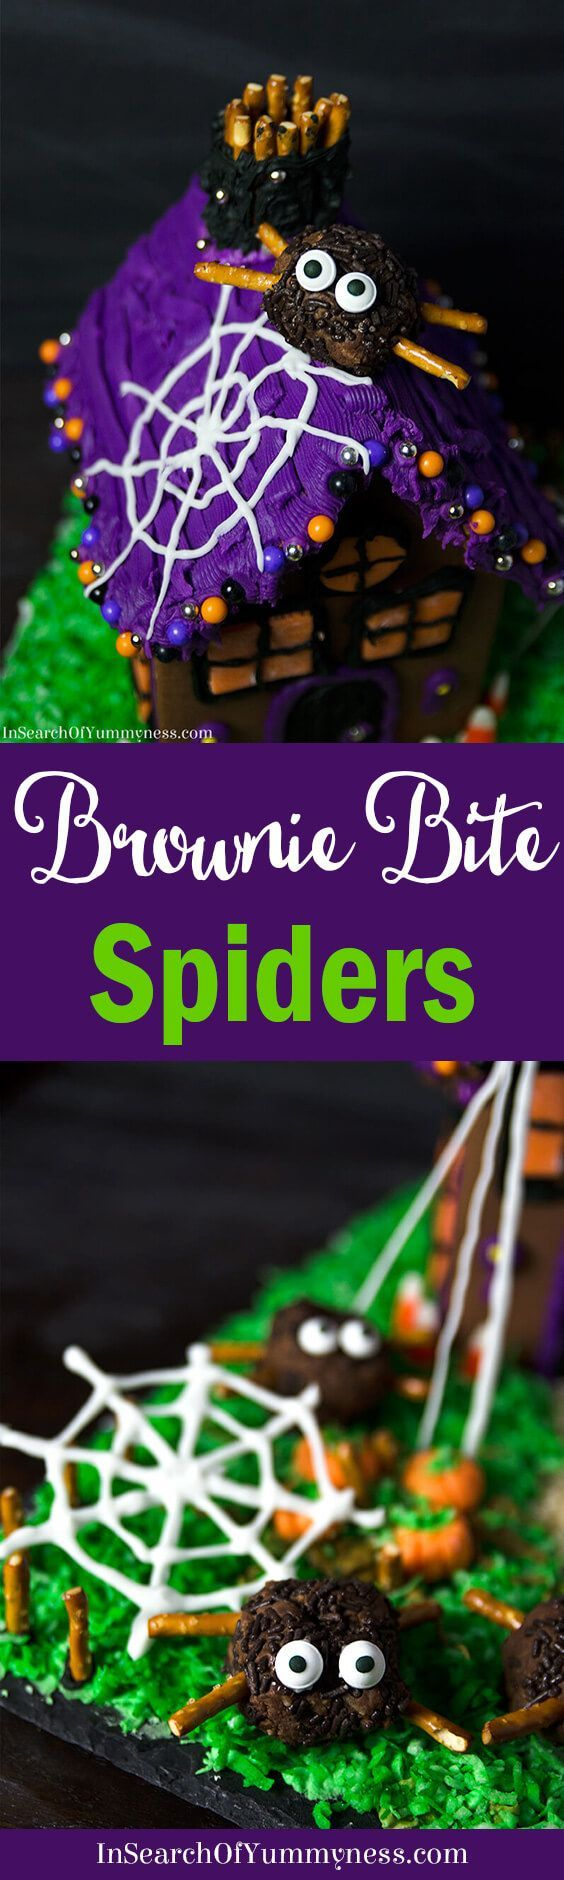 Make these cute spider-shaped treats for your next Halloween party! Get the #recipe for these fudgey brownie bites at InSearchOfYummyness.com.